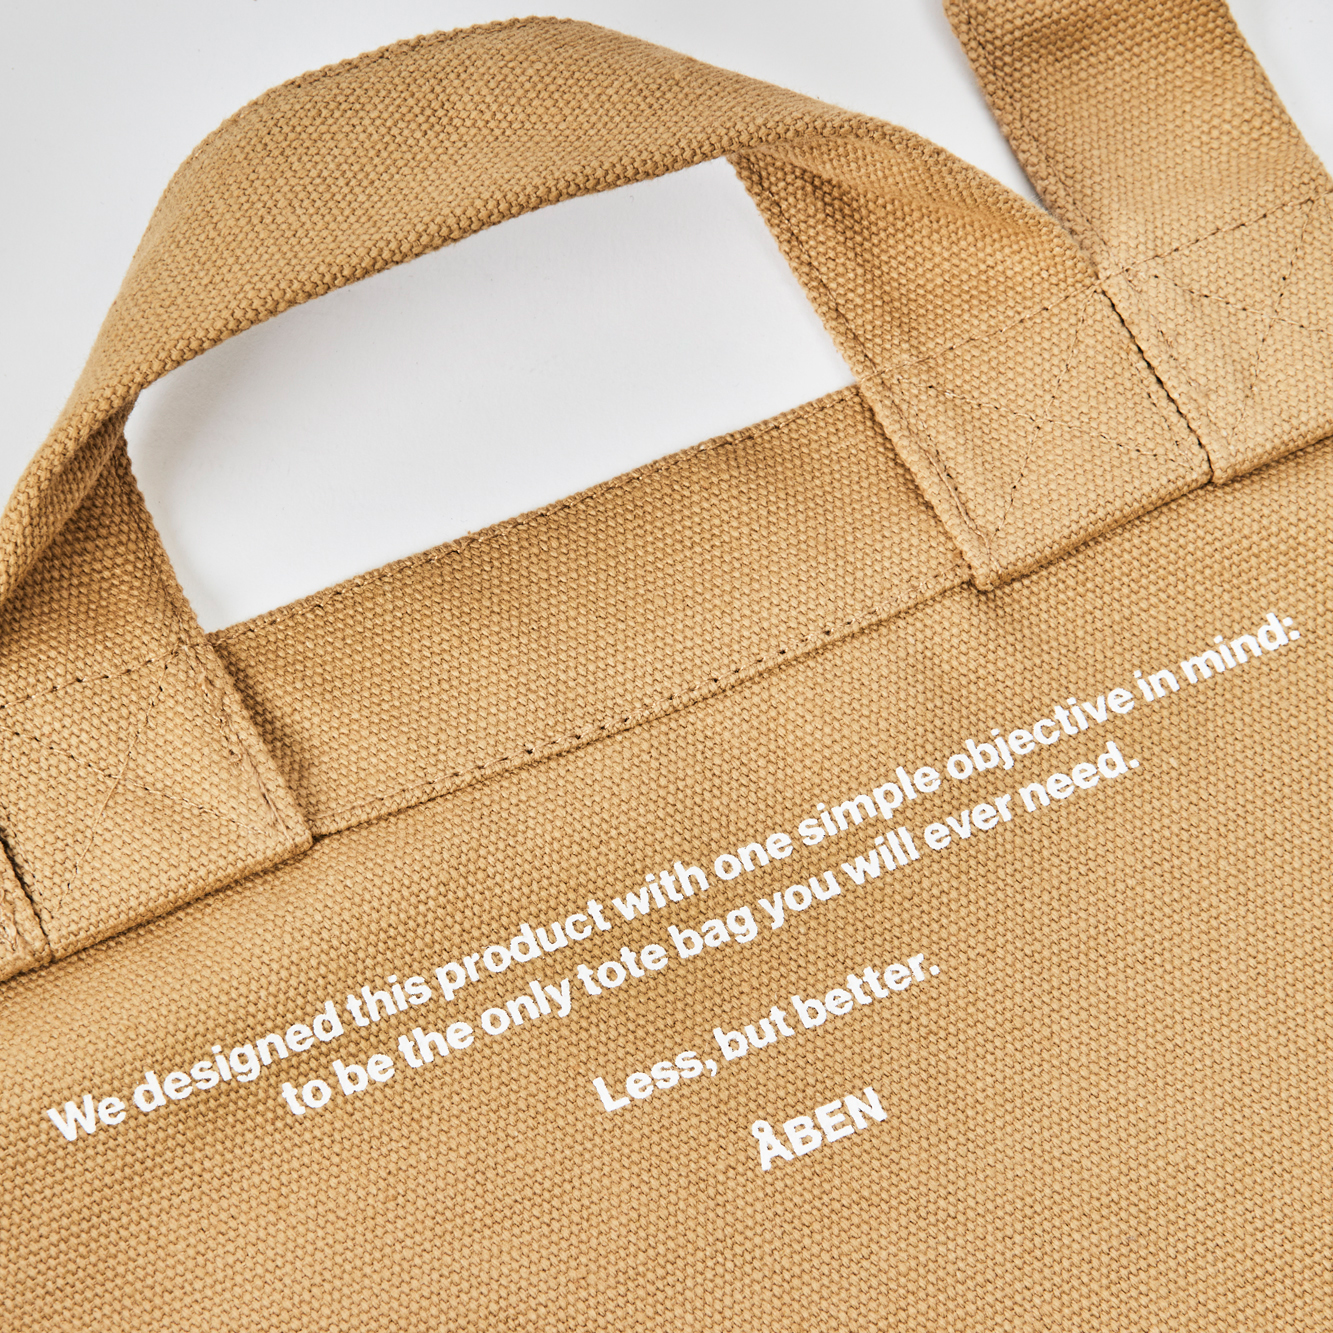 Progress Packaging Eco Friendly Canvas Tote Bag For Life Design Minimal Limited Edition Environmentally Friendly Creative Production Manufacture Uk 07